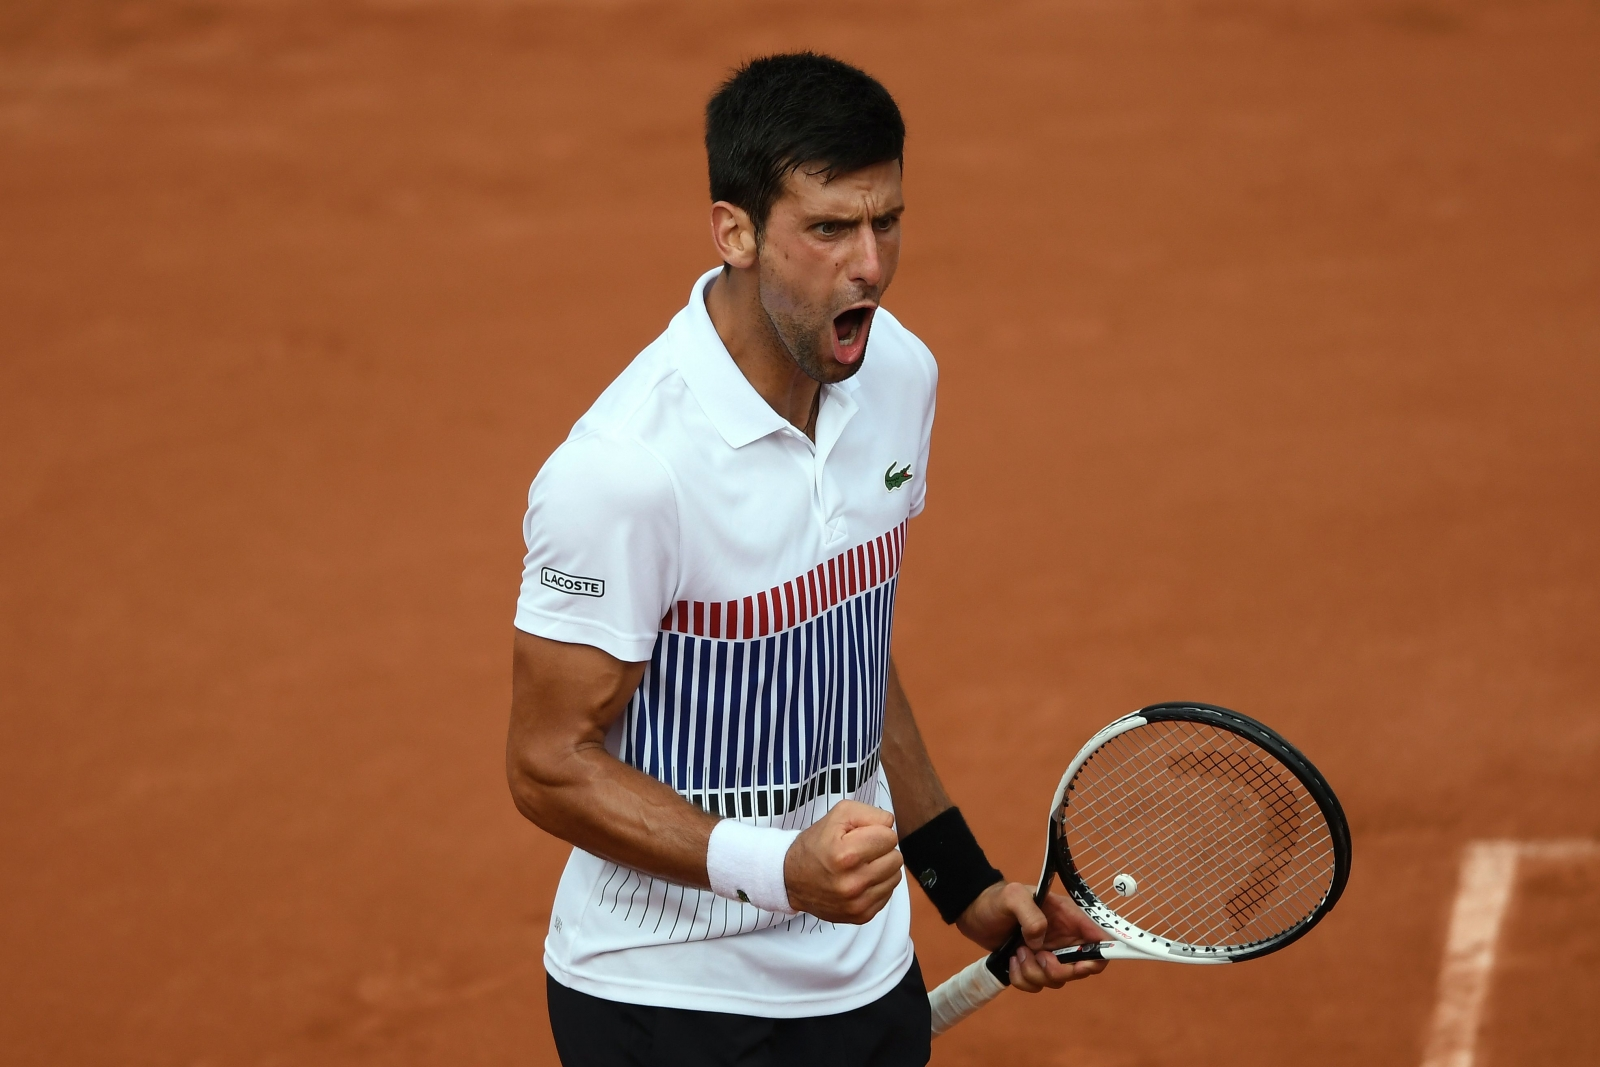 ROLAND GARROS MEN'S SINGLES: Djokovic survives Schwartzman test. Thiem wins